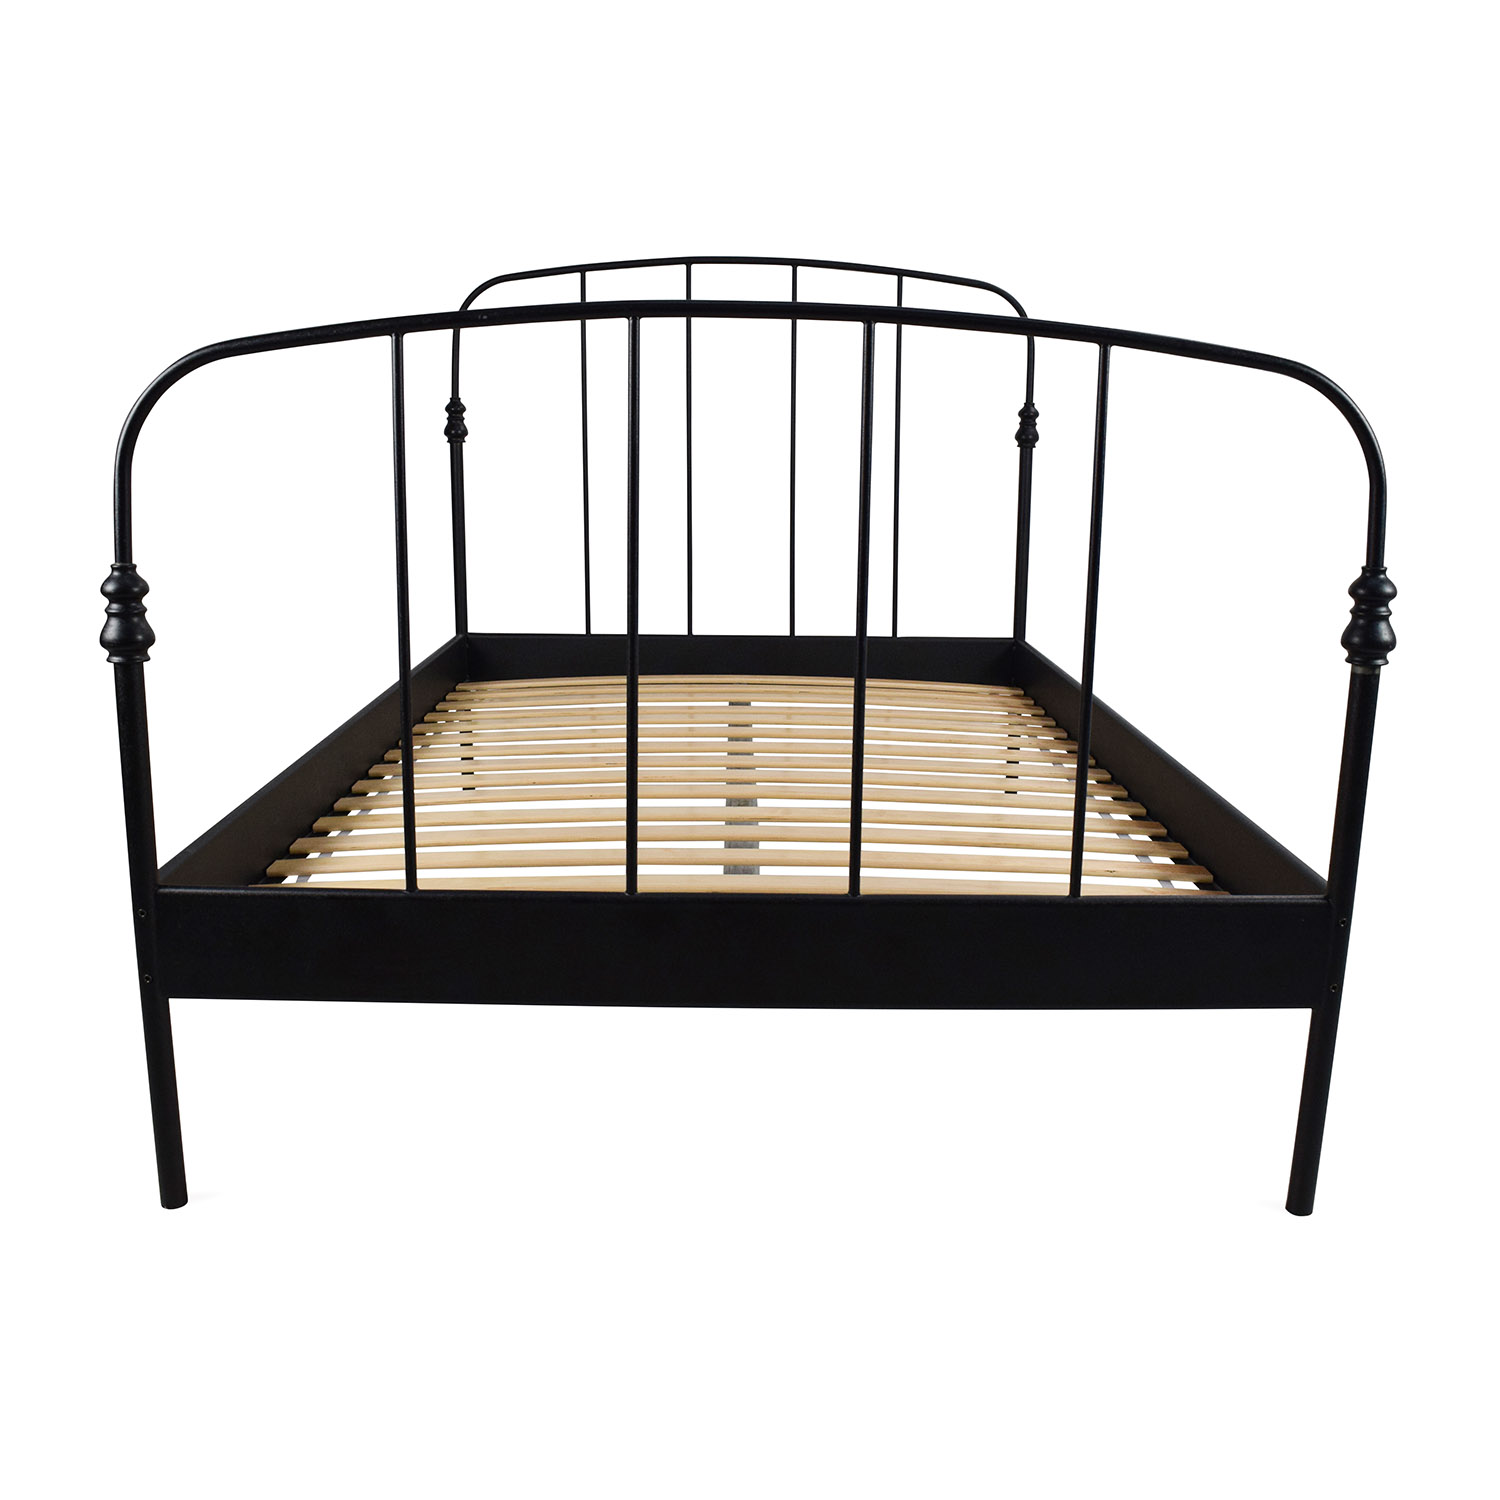 62% OFF   IKEA IKEA SVELVIK Full Size Black Bed Frame / Beds